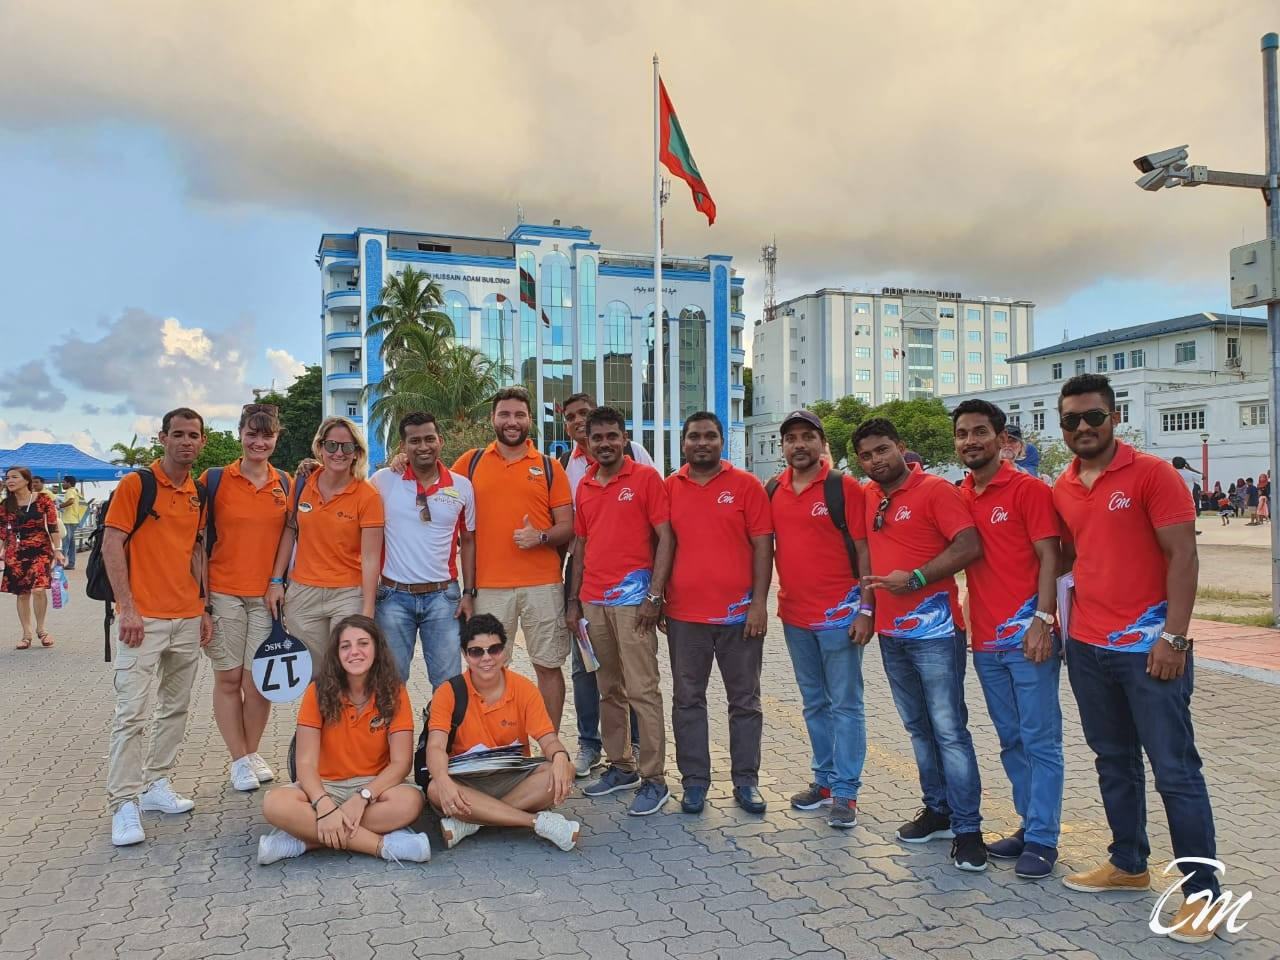 Team TCM, Shrine and MSC after a successful operation of MSC ORCHESTRA in Maldives.